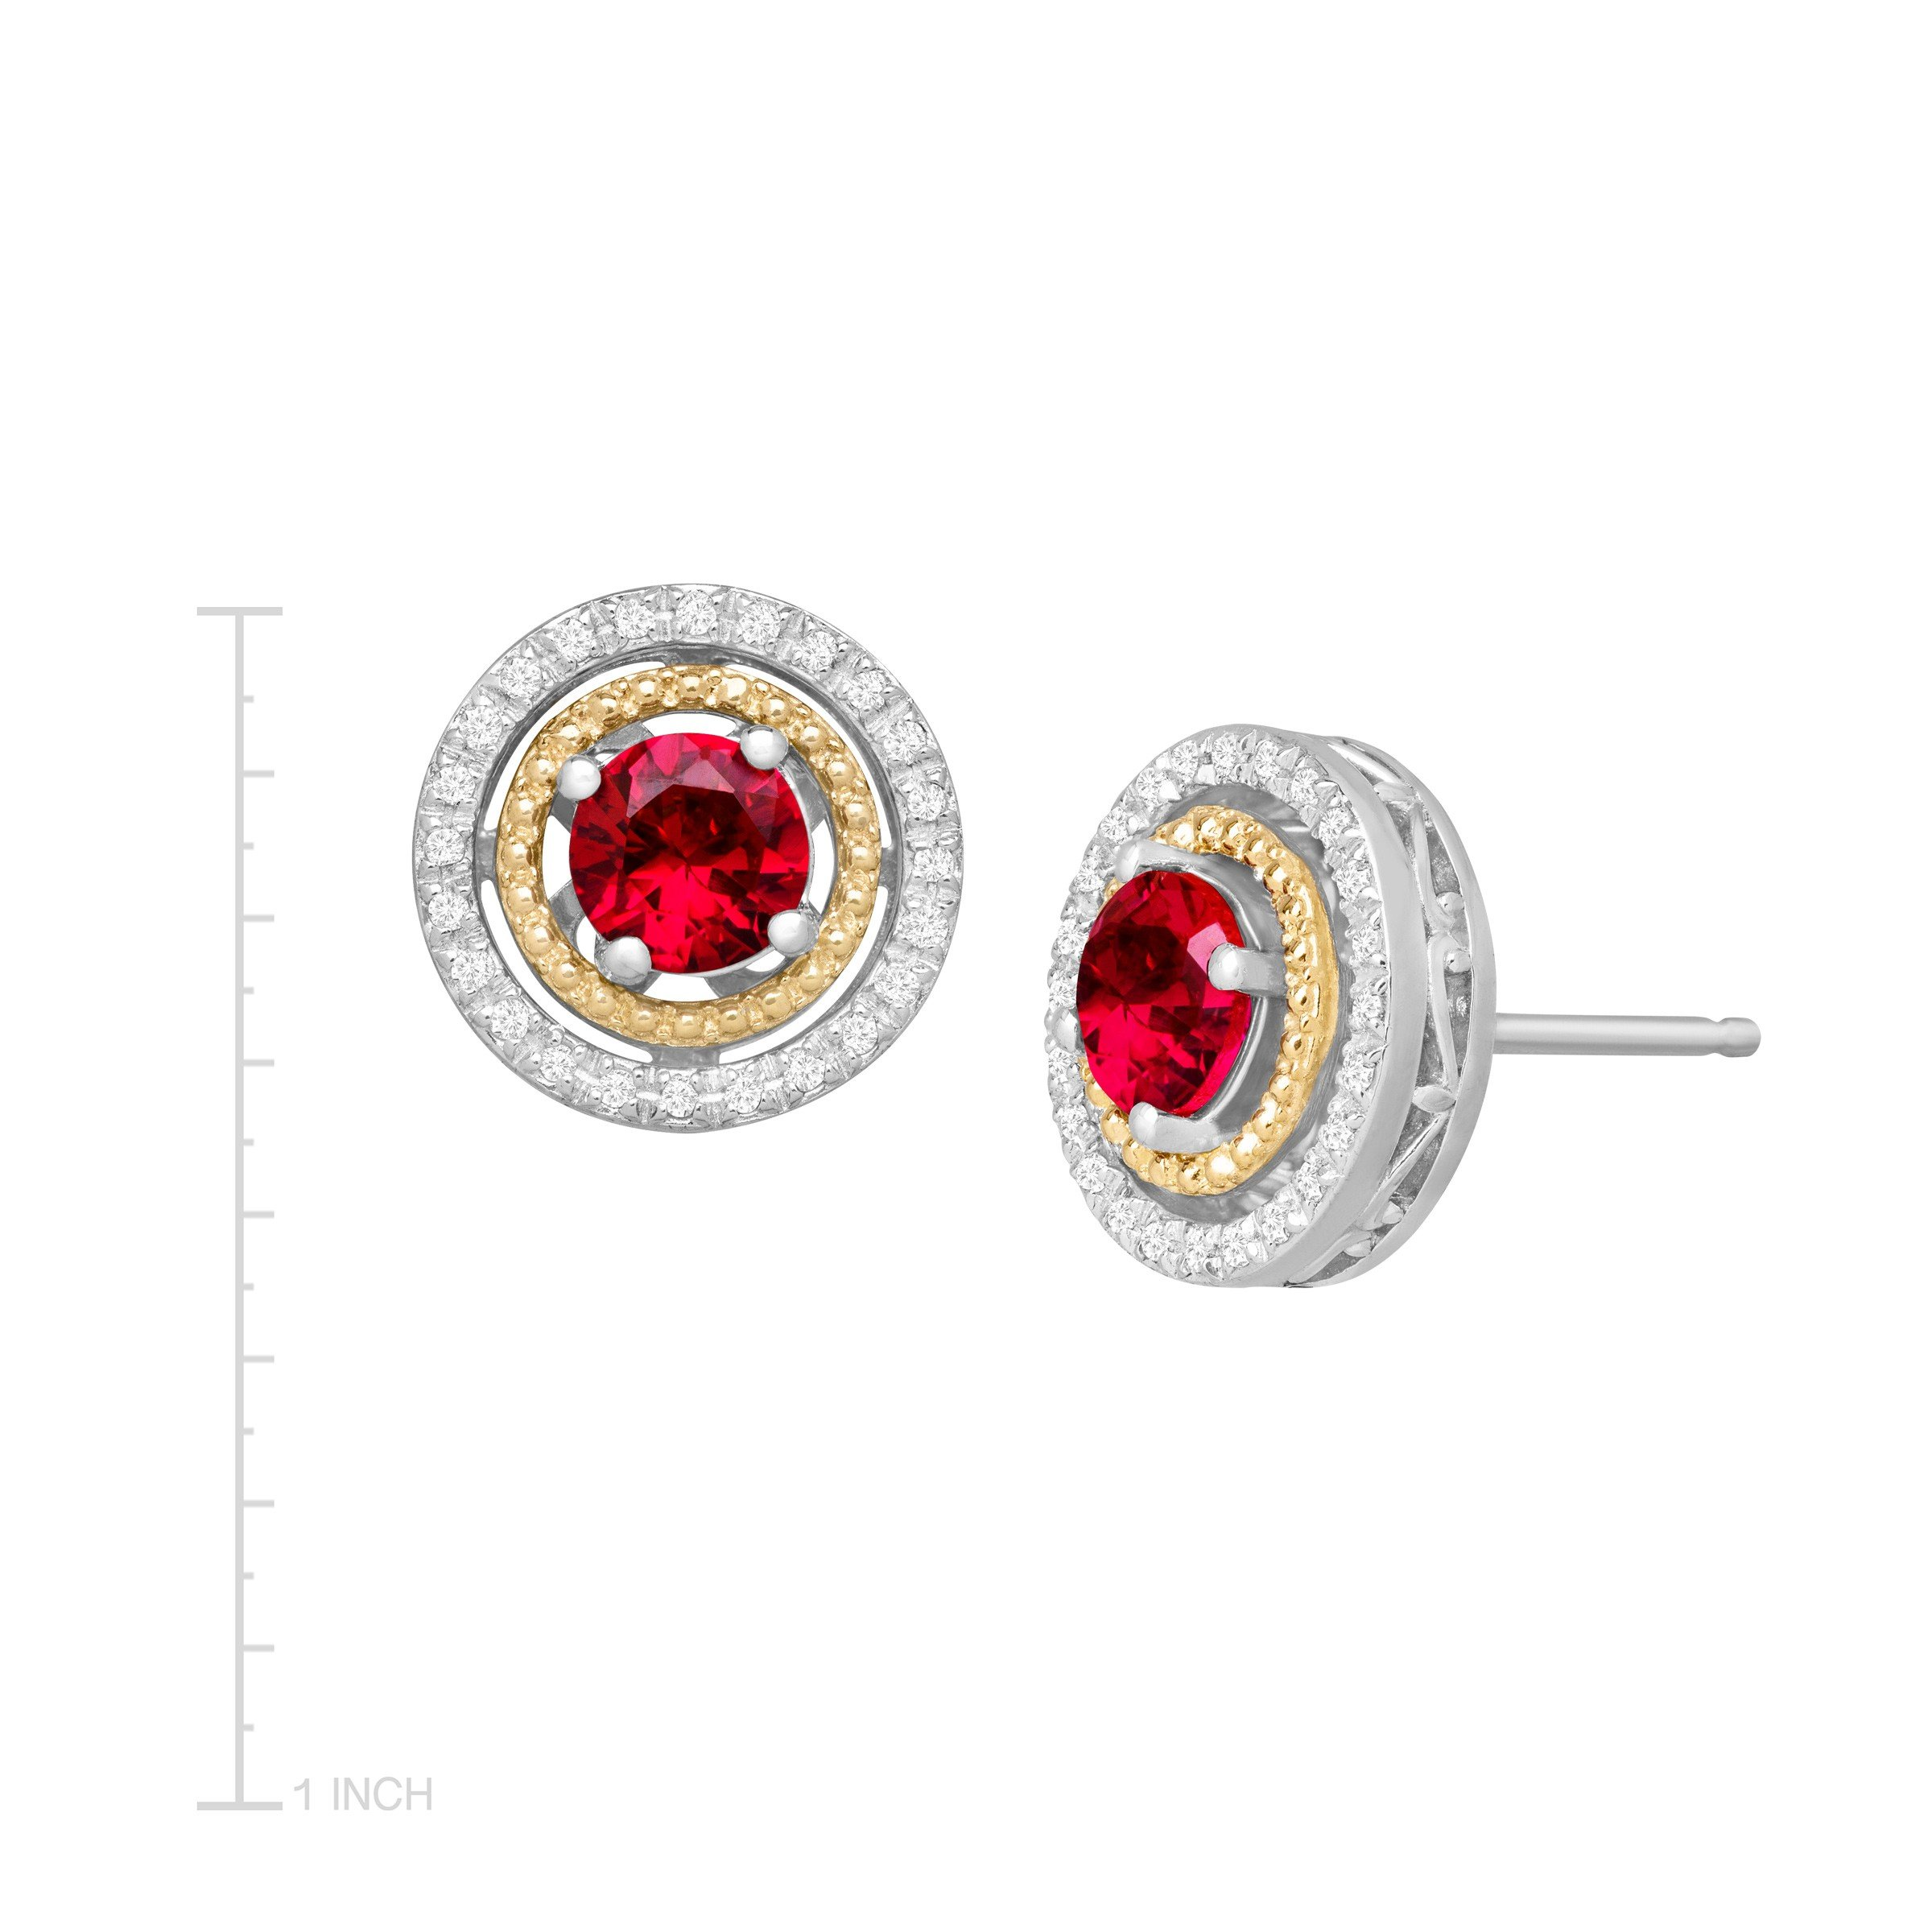 1 1/3 ct Created Ruby & 1/8 ct Diamond Stud Earrings in Sterling Silver and 14K Gold by Finecraft (Image #3)